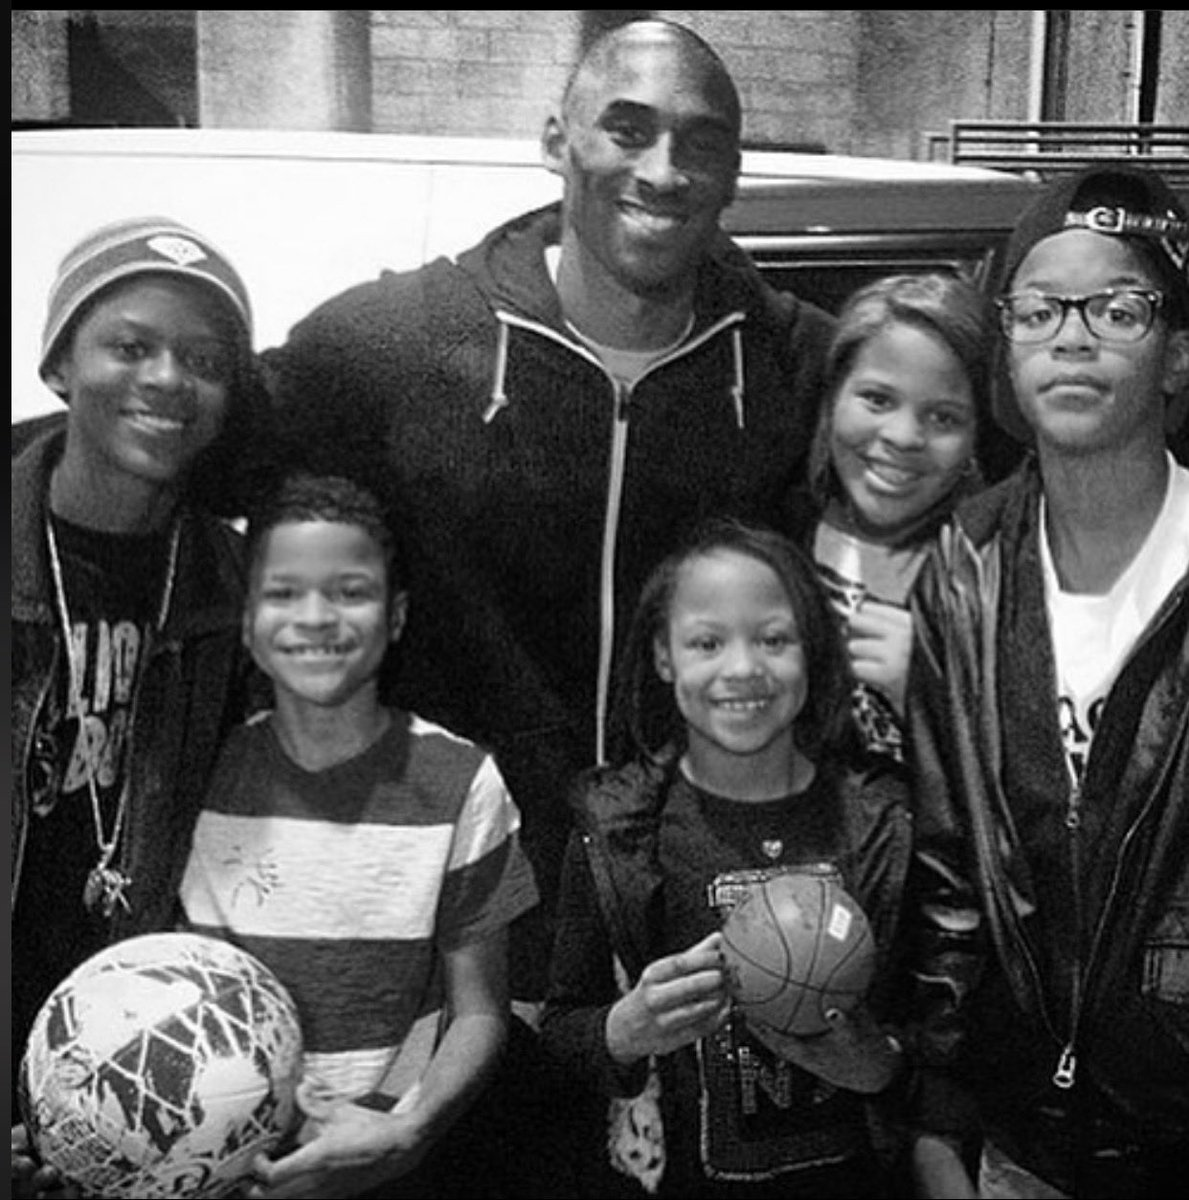 Kobe was so much more than an athlete, he was a family man. That was what we had most in common. I would hug his children like they were my own and he would embrace my kids like they were his. His baby girl Gigi was born on the same day as my youngest daughter Me'Arah.